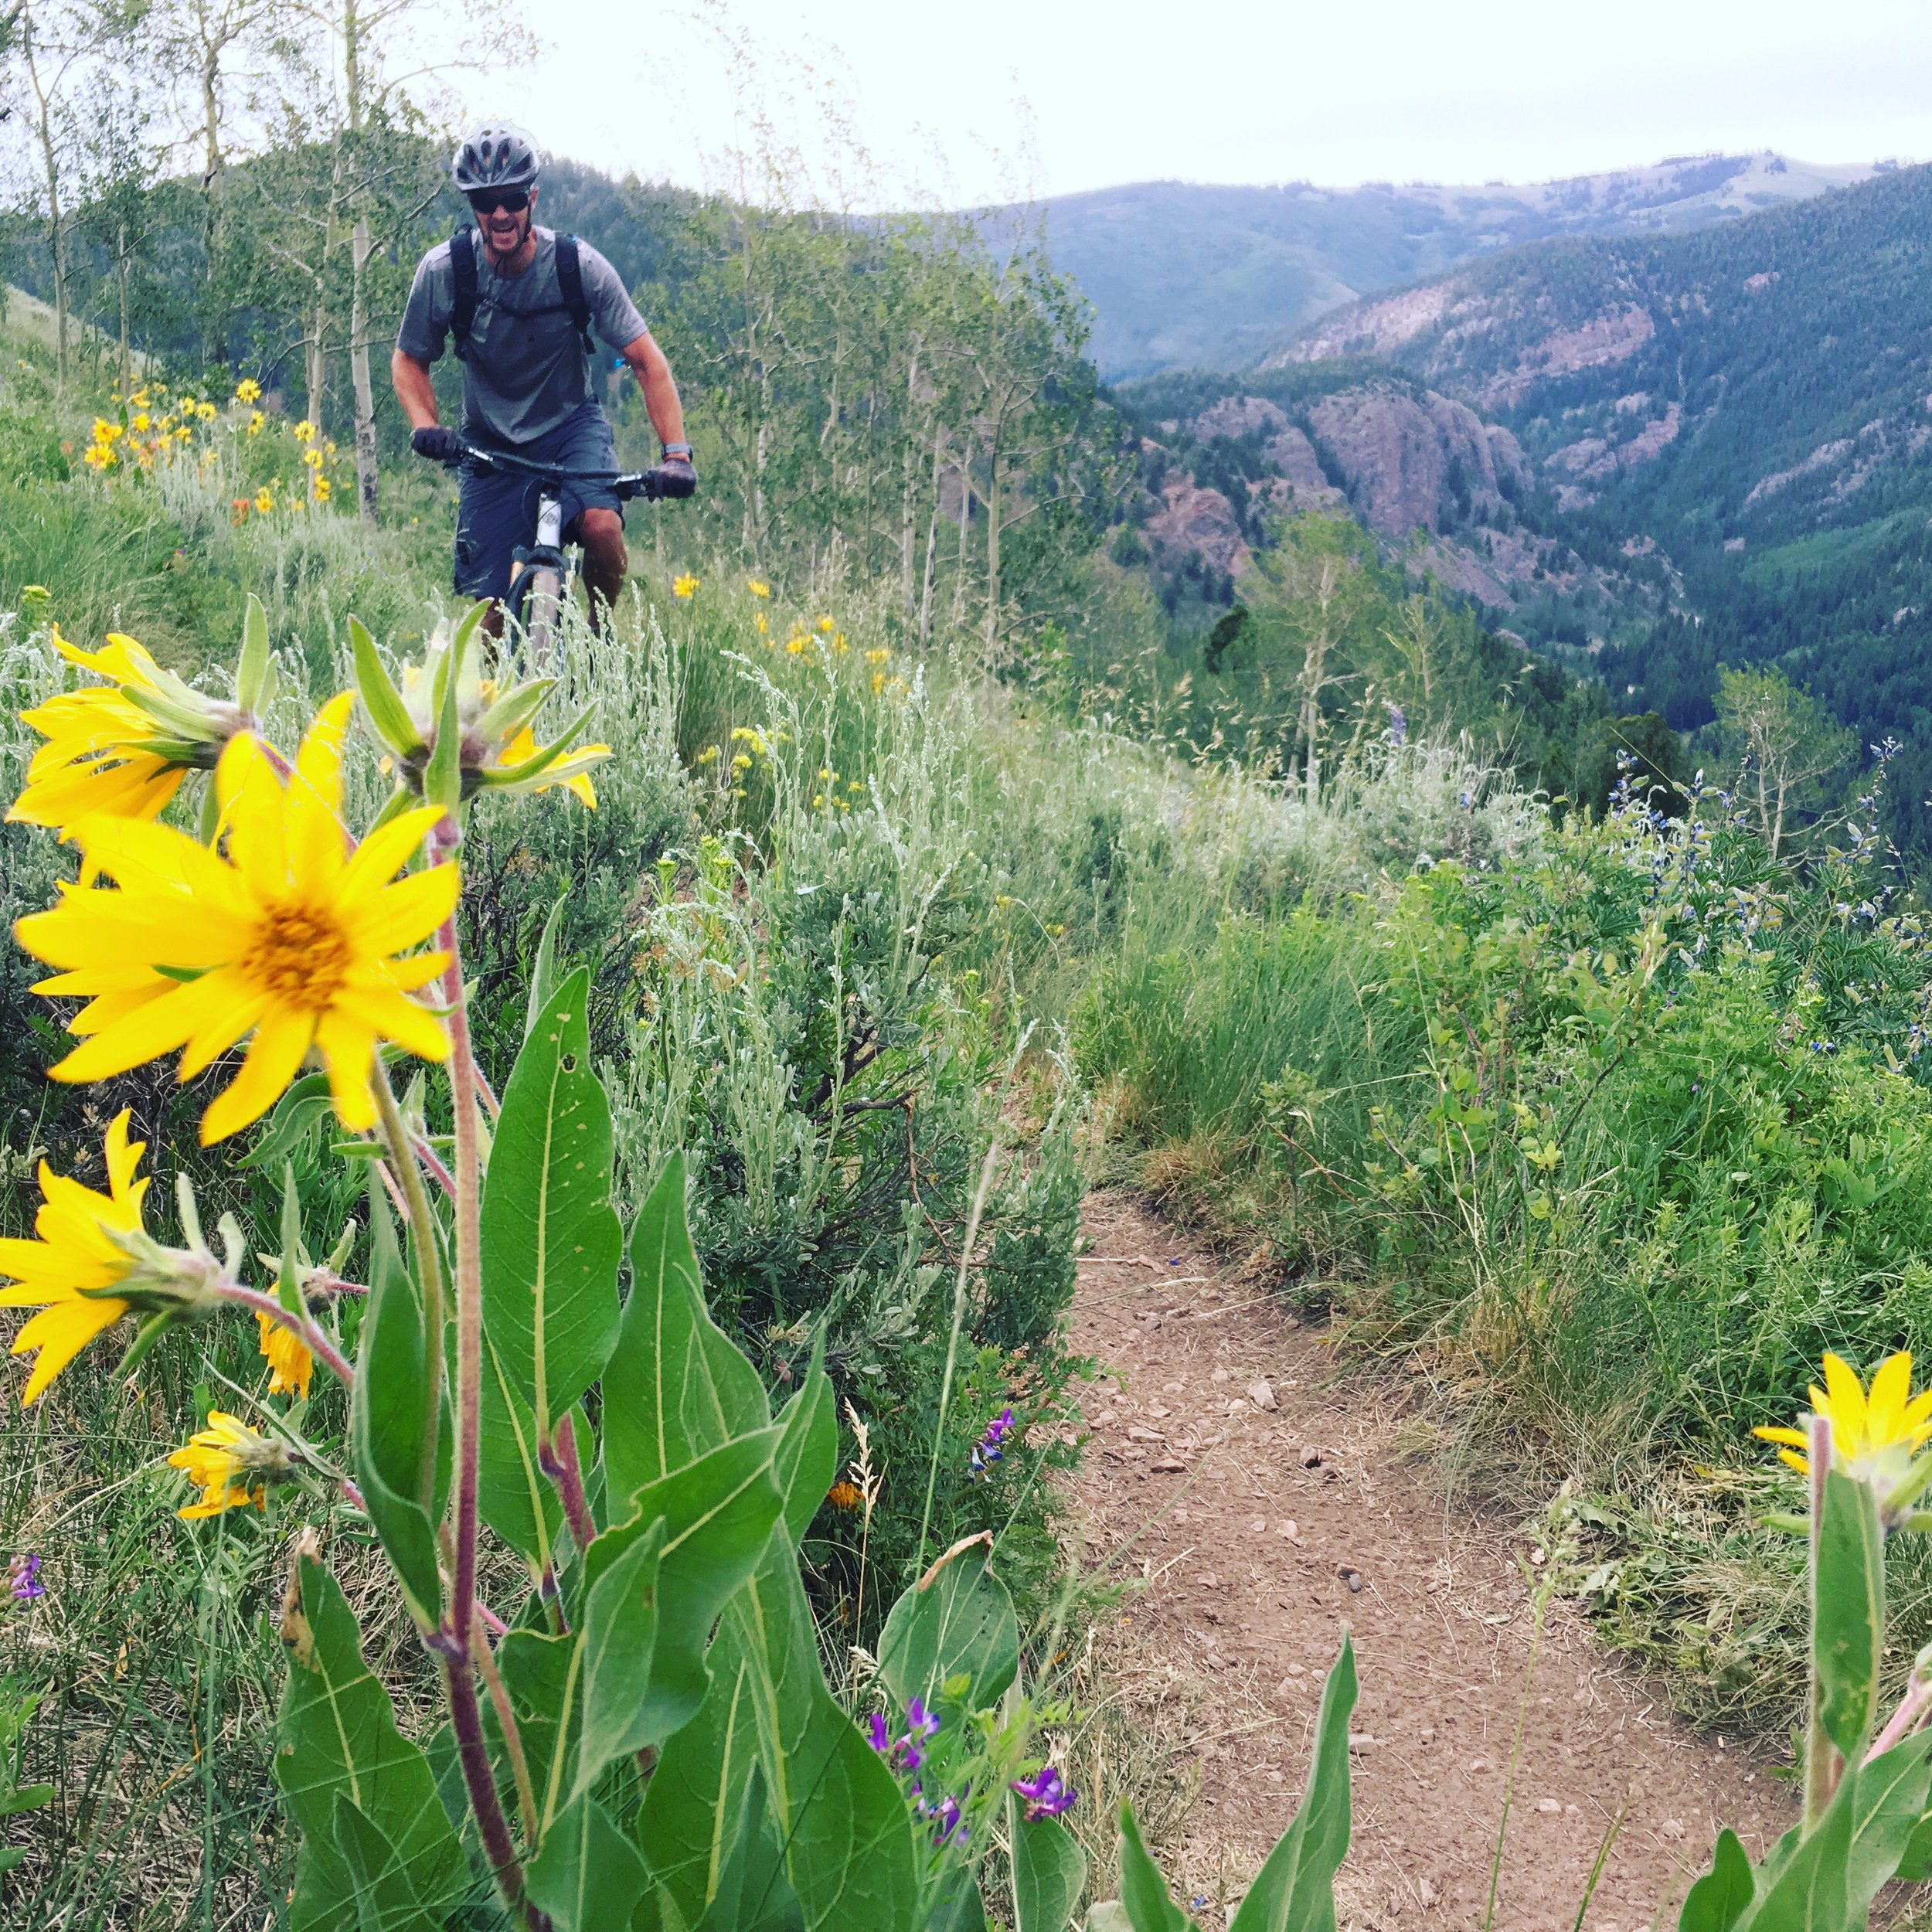 andy biking training fitness crested butte gym.JPG